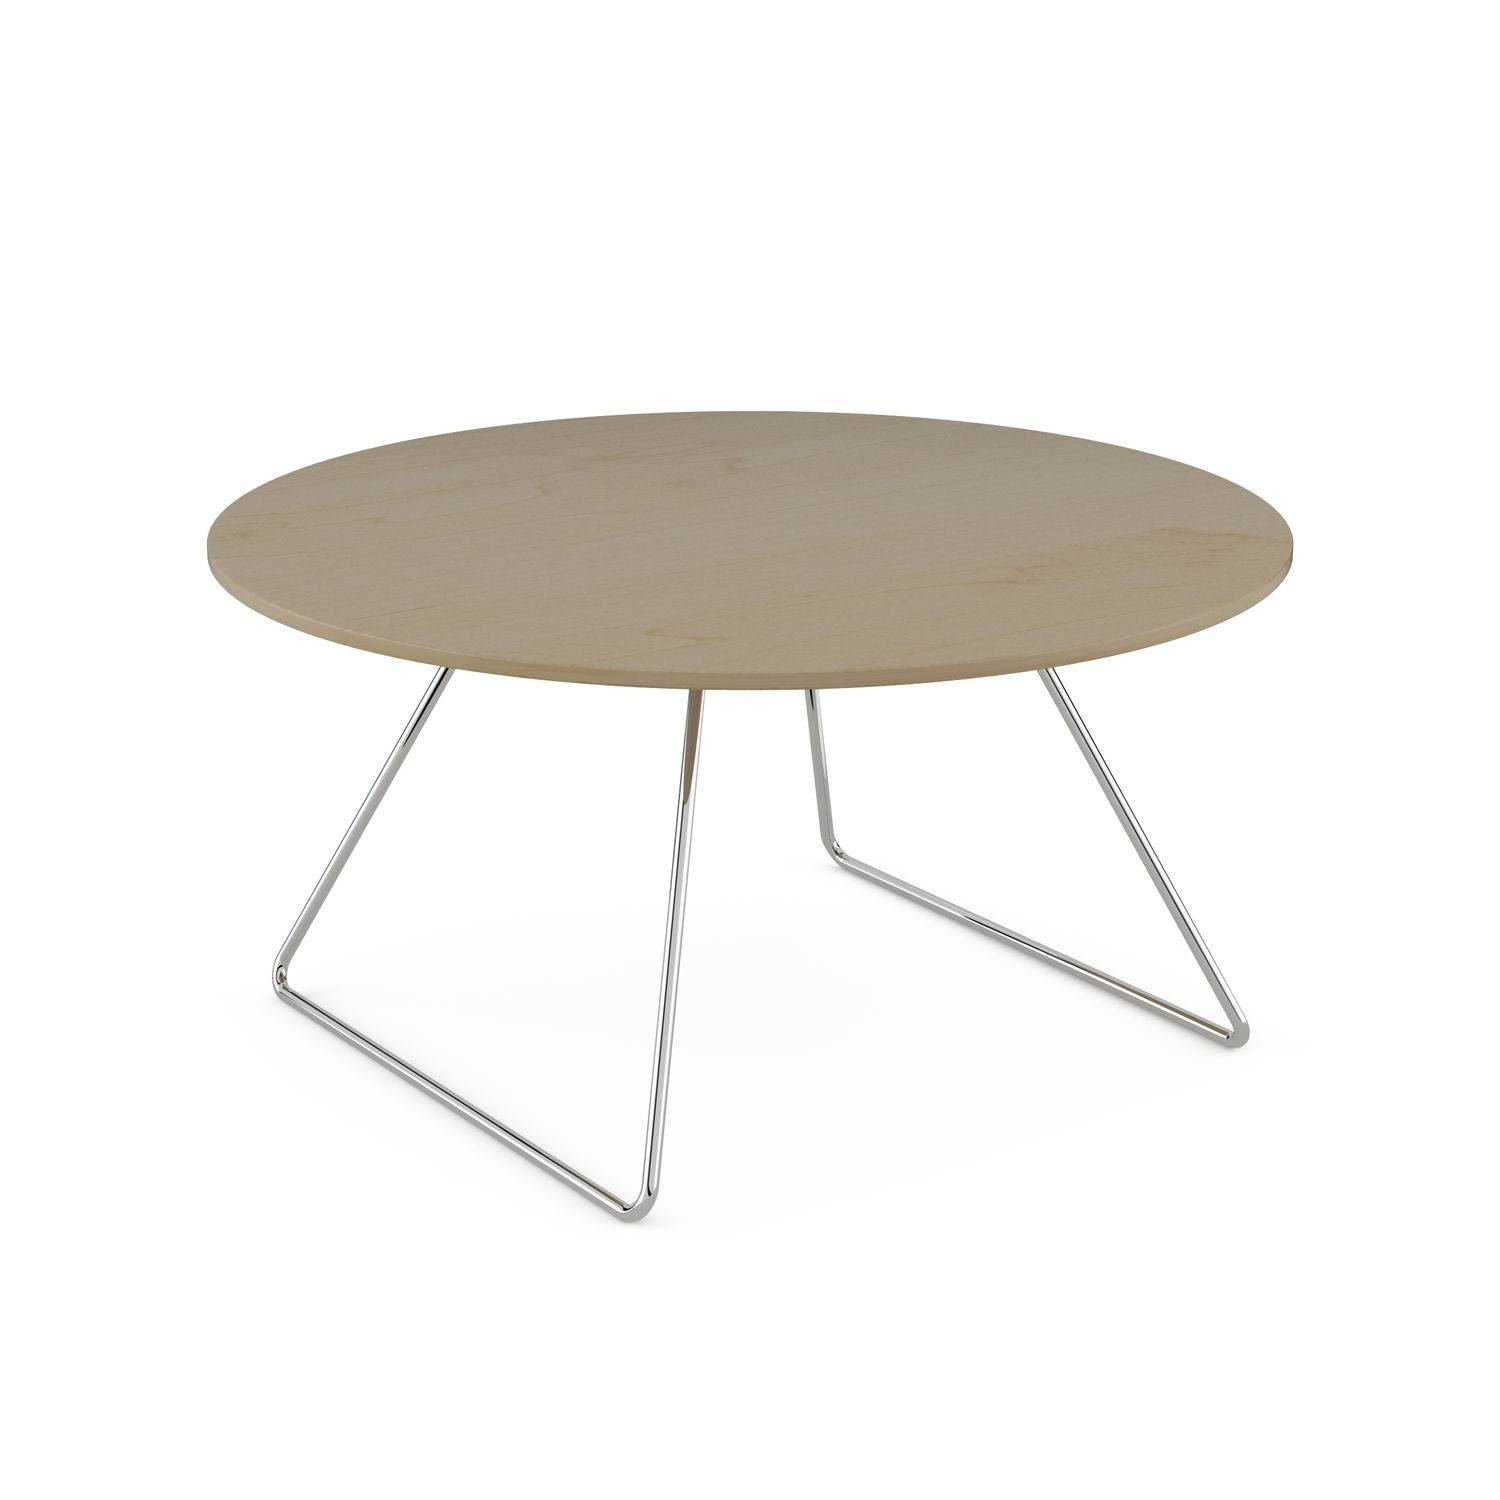 Contemporary Coffee Table / Beech / Round - Line - Komac within Round Beech Coffee Tables (Image 11 of 30)